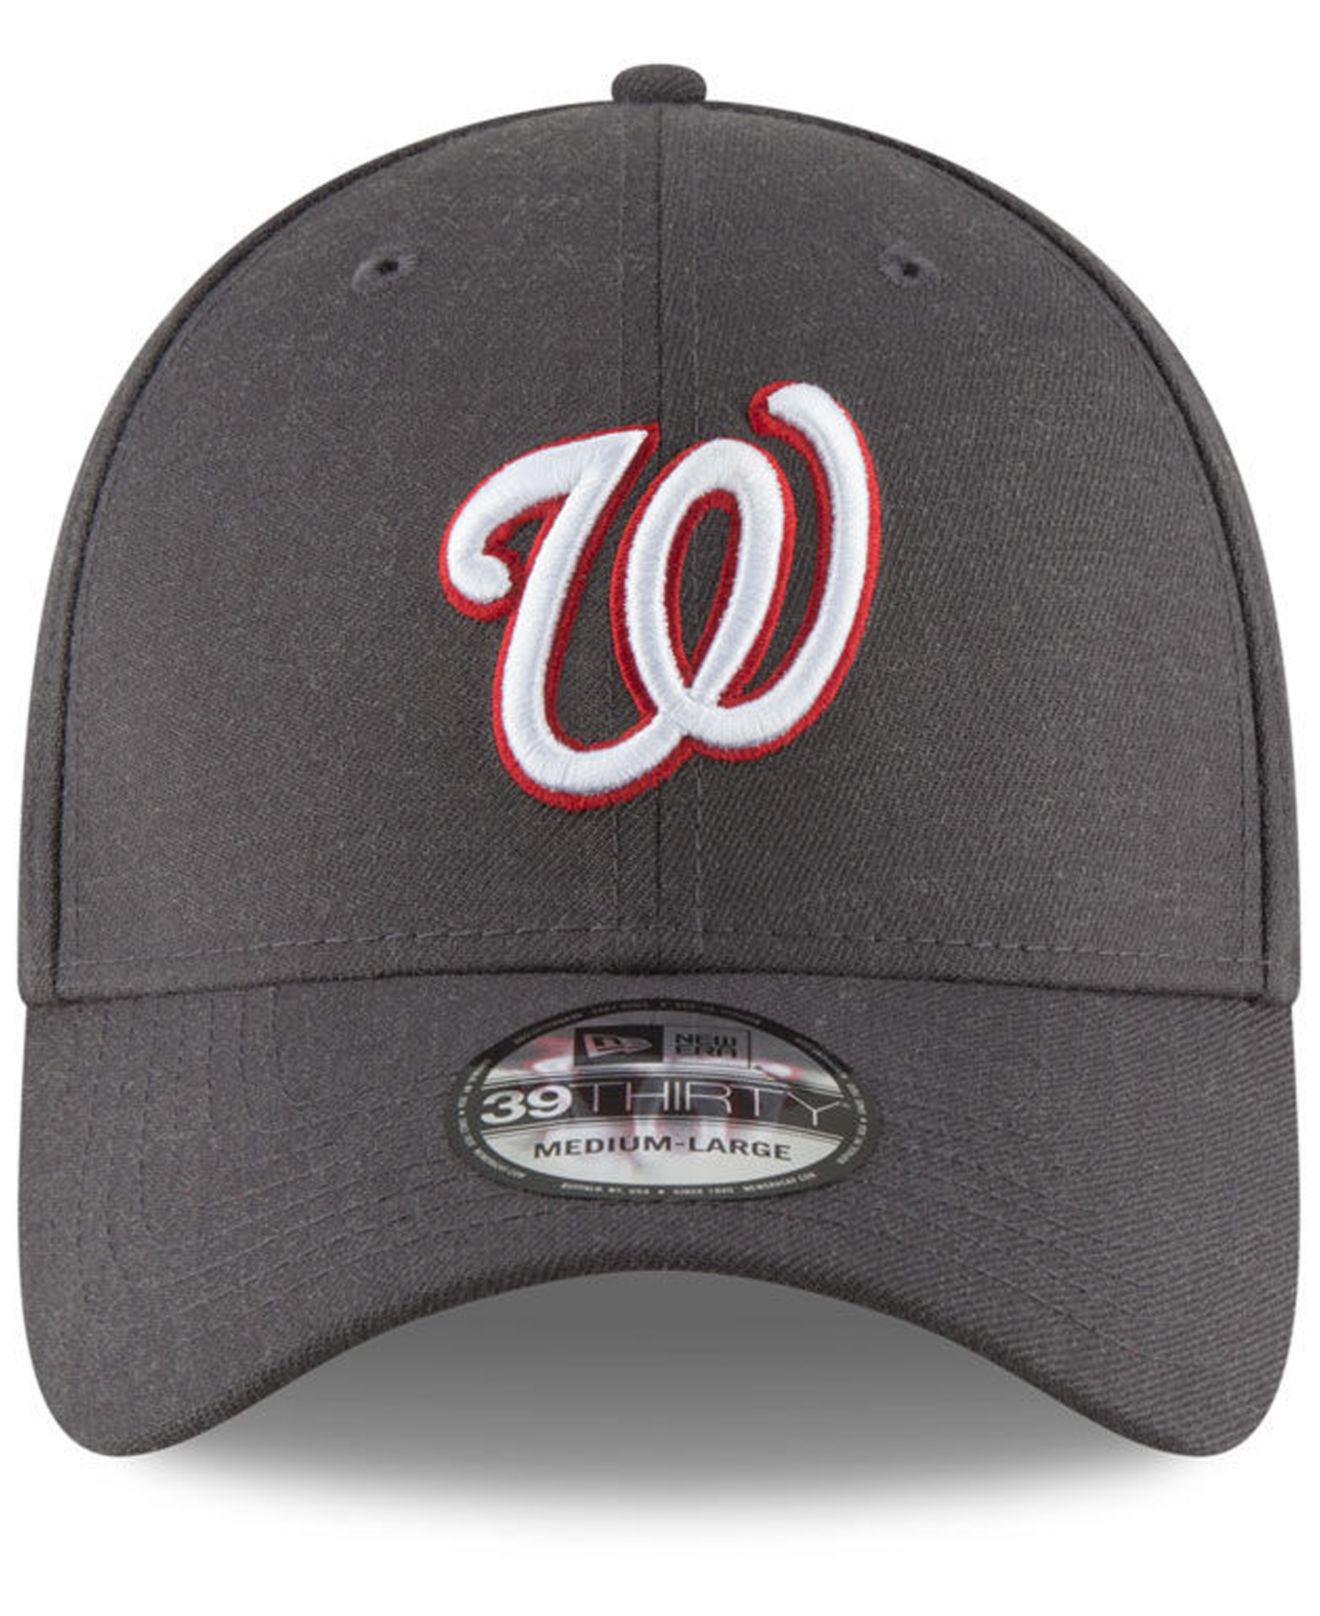 c071269ca16 Lyst - Ktz Washington Nationals Charcoal Classic 39thirty Cap in Gray for  Men